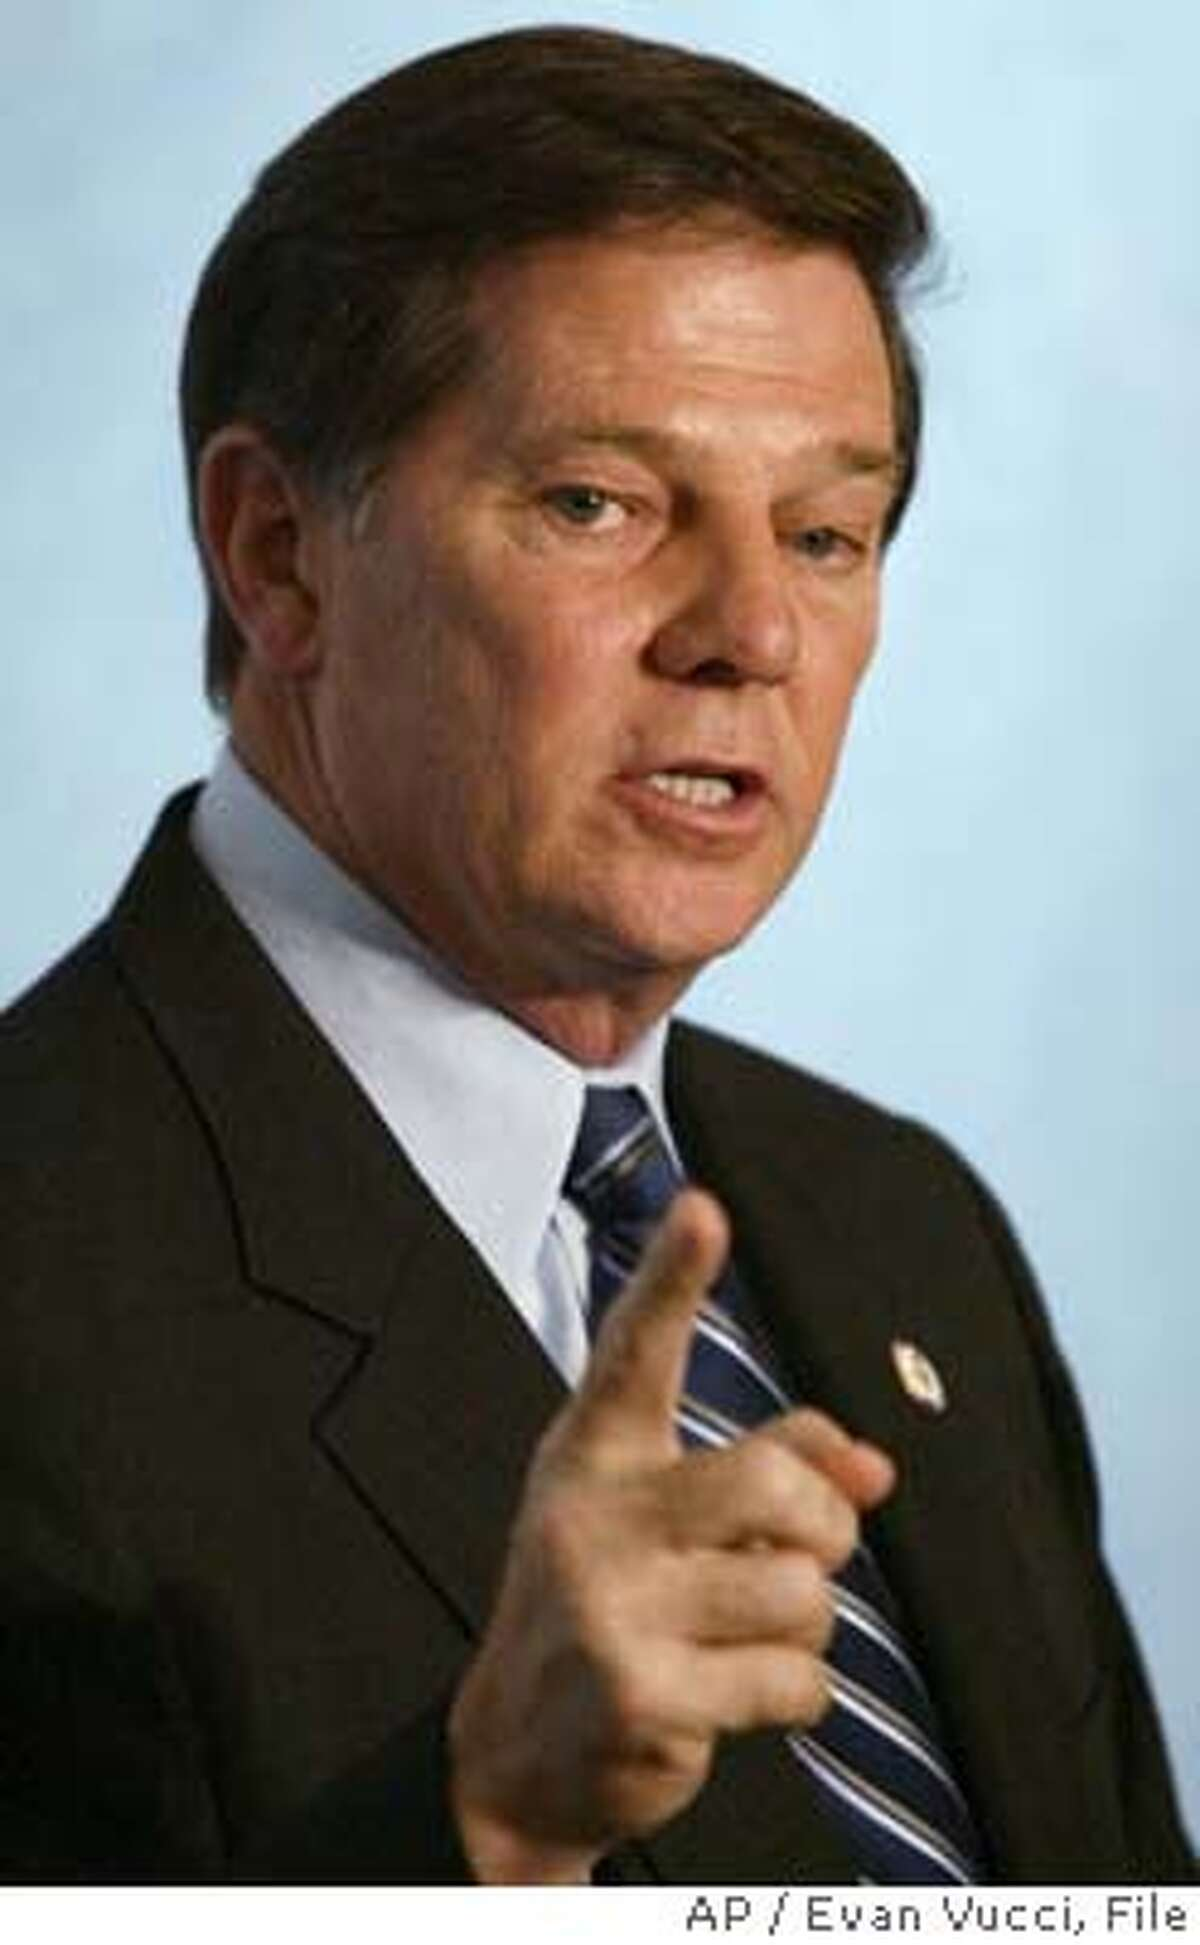 **FILE** House Majority Leader Rep. Tom DeLay, R-Texas, speaks to the Heritage Foundation in this Sept. 24, 2003 file photo in Washington. A Texas Democrat who saw his political career halted by the maneuverings of House Majority Leader Tom DeLay and other Republicans filed multiple complaints with the House ethics committee Tuesday, June 15, 2004. (AP Photo/Evan Vucci, File) Ran on: 06-16-2004 Ran on: 06-16-2004 Rep. Chris Bell SEPT 24, 2004 FILE PHOTO